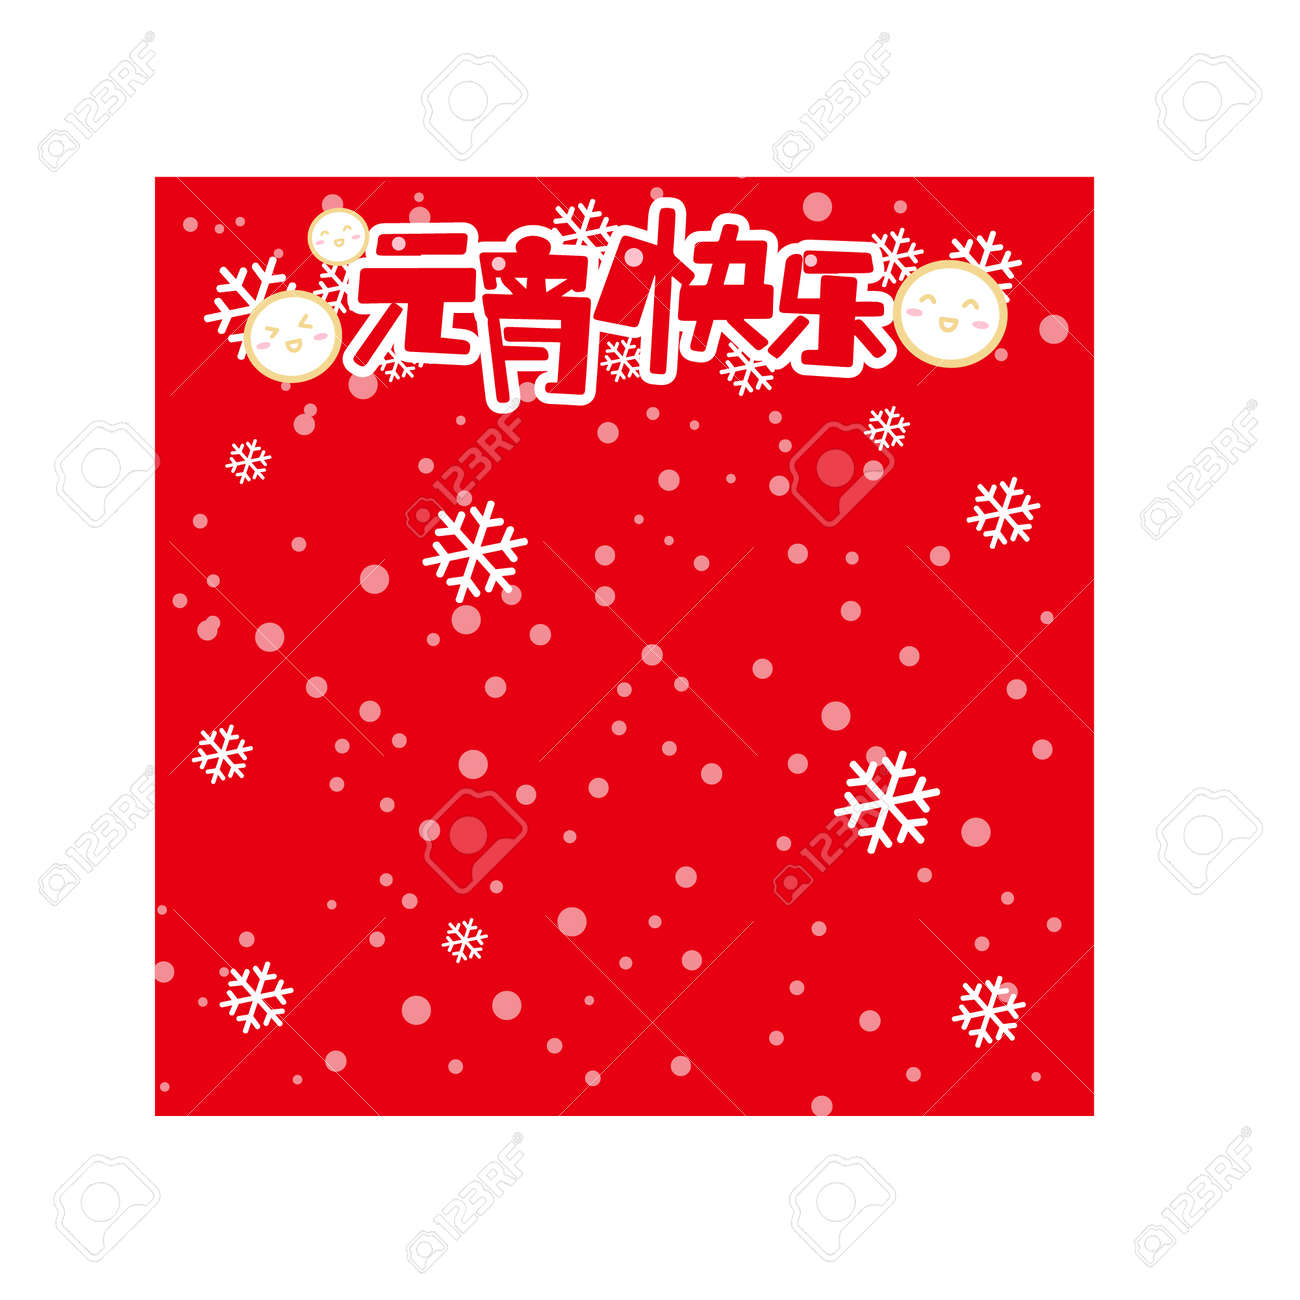 Cartoon Winter Solstice Greeting Background Royalty Free Cliparts